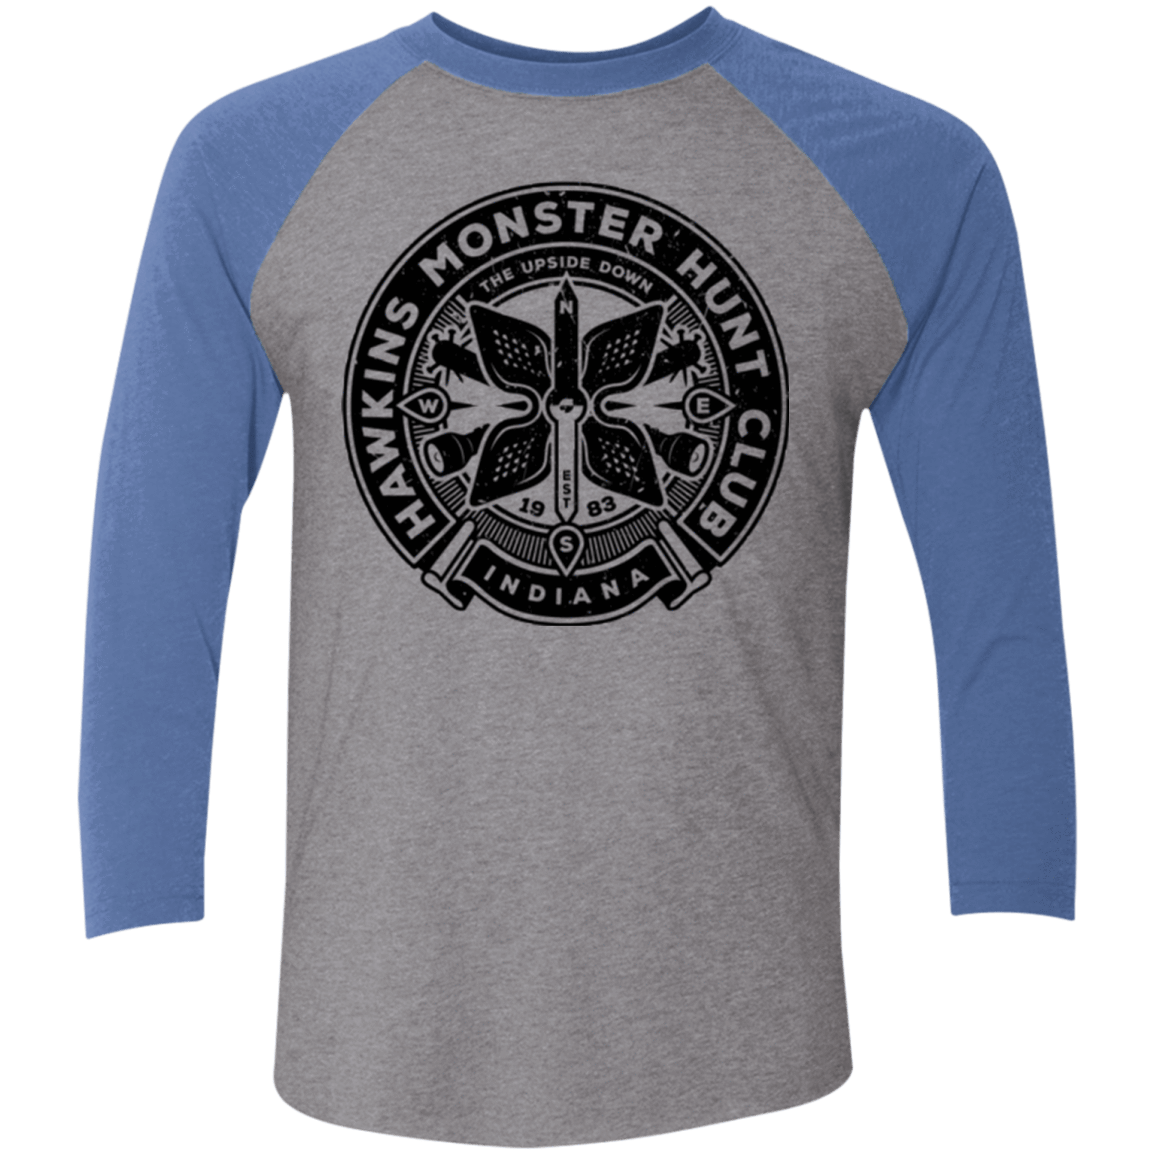 T-Shirts Premium Heather/ Vintage Royal / X-Small Monster Hunt Club Men's Triblend 3/4 Sleeve